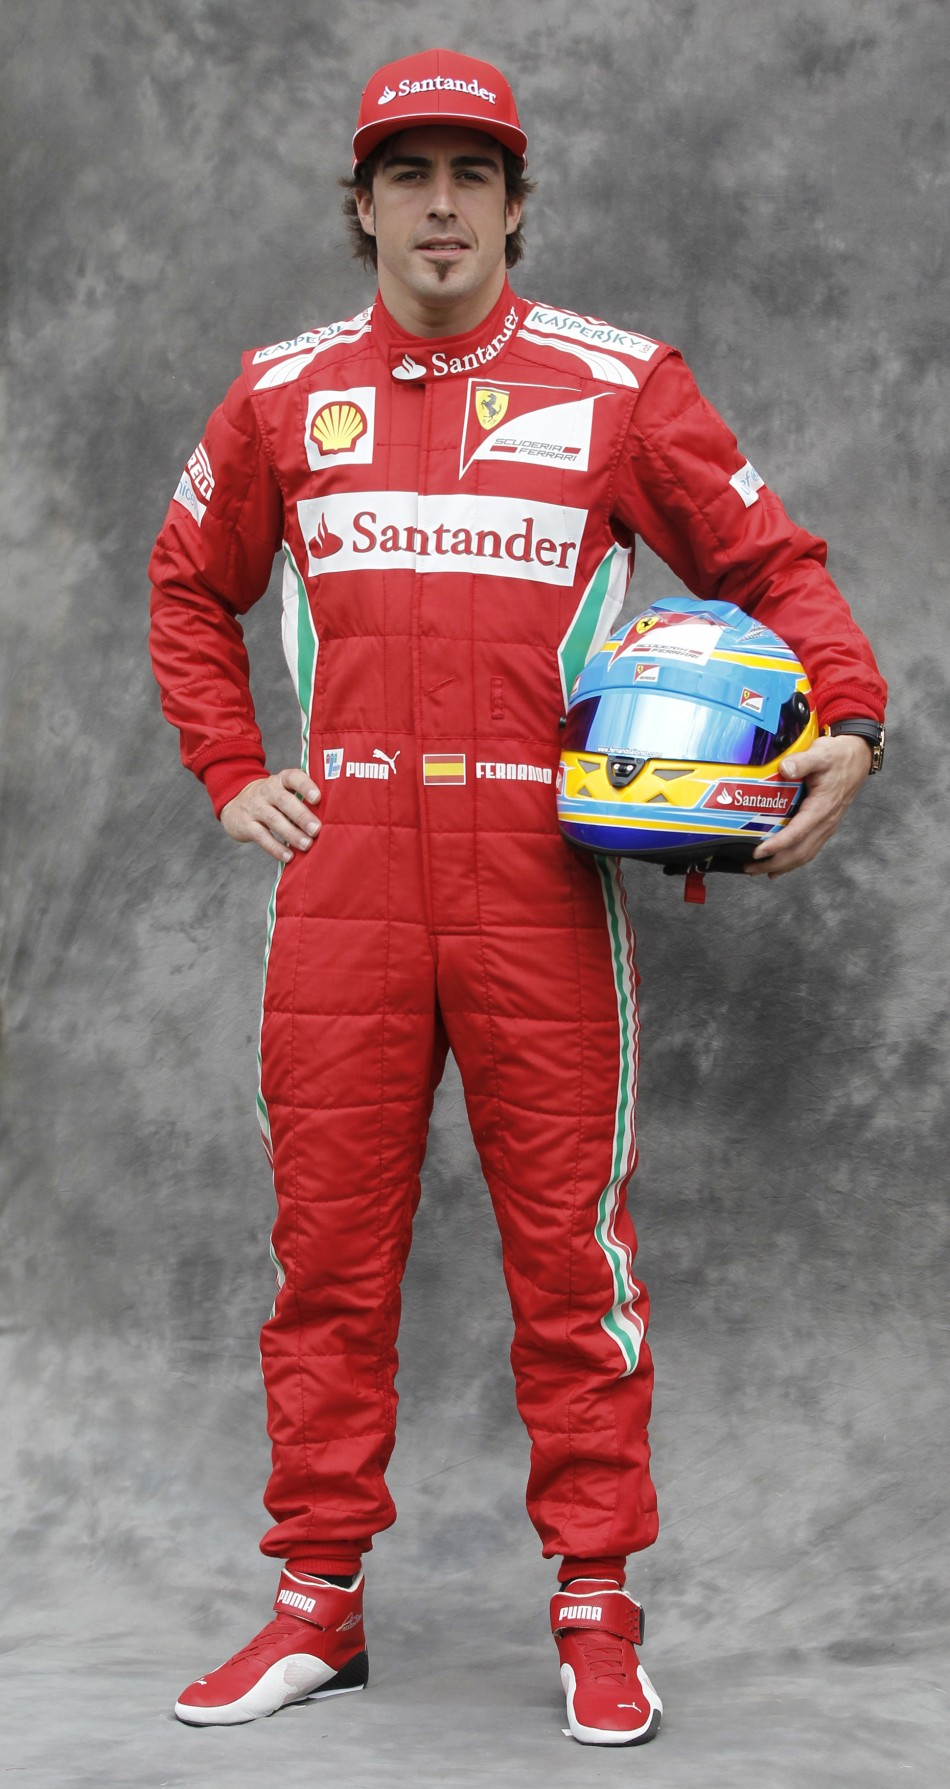 Ferrari Formula One driver Alonso poses prior to the Australian F1 Grand Prix at the Albert Park circuit in Melbourne